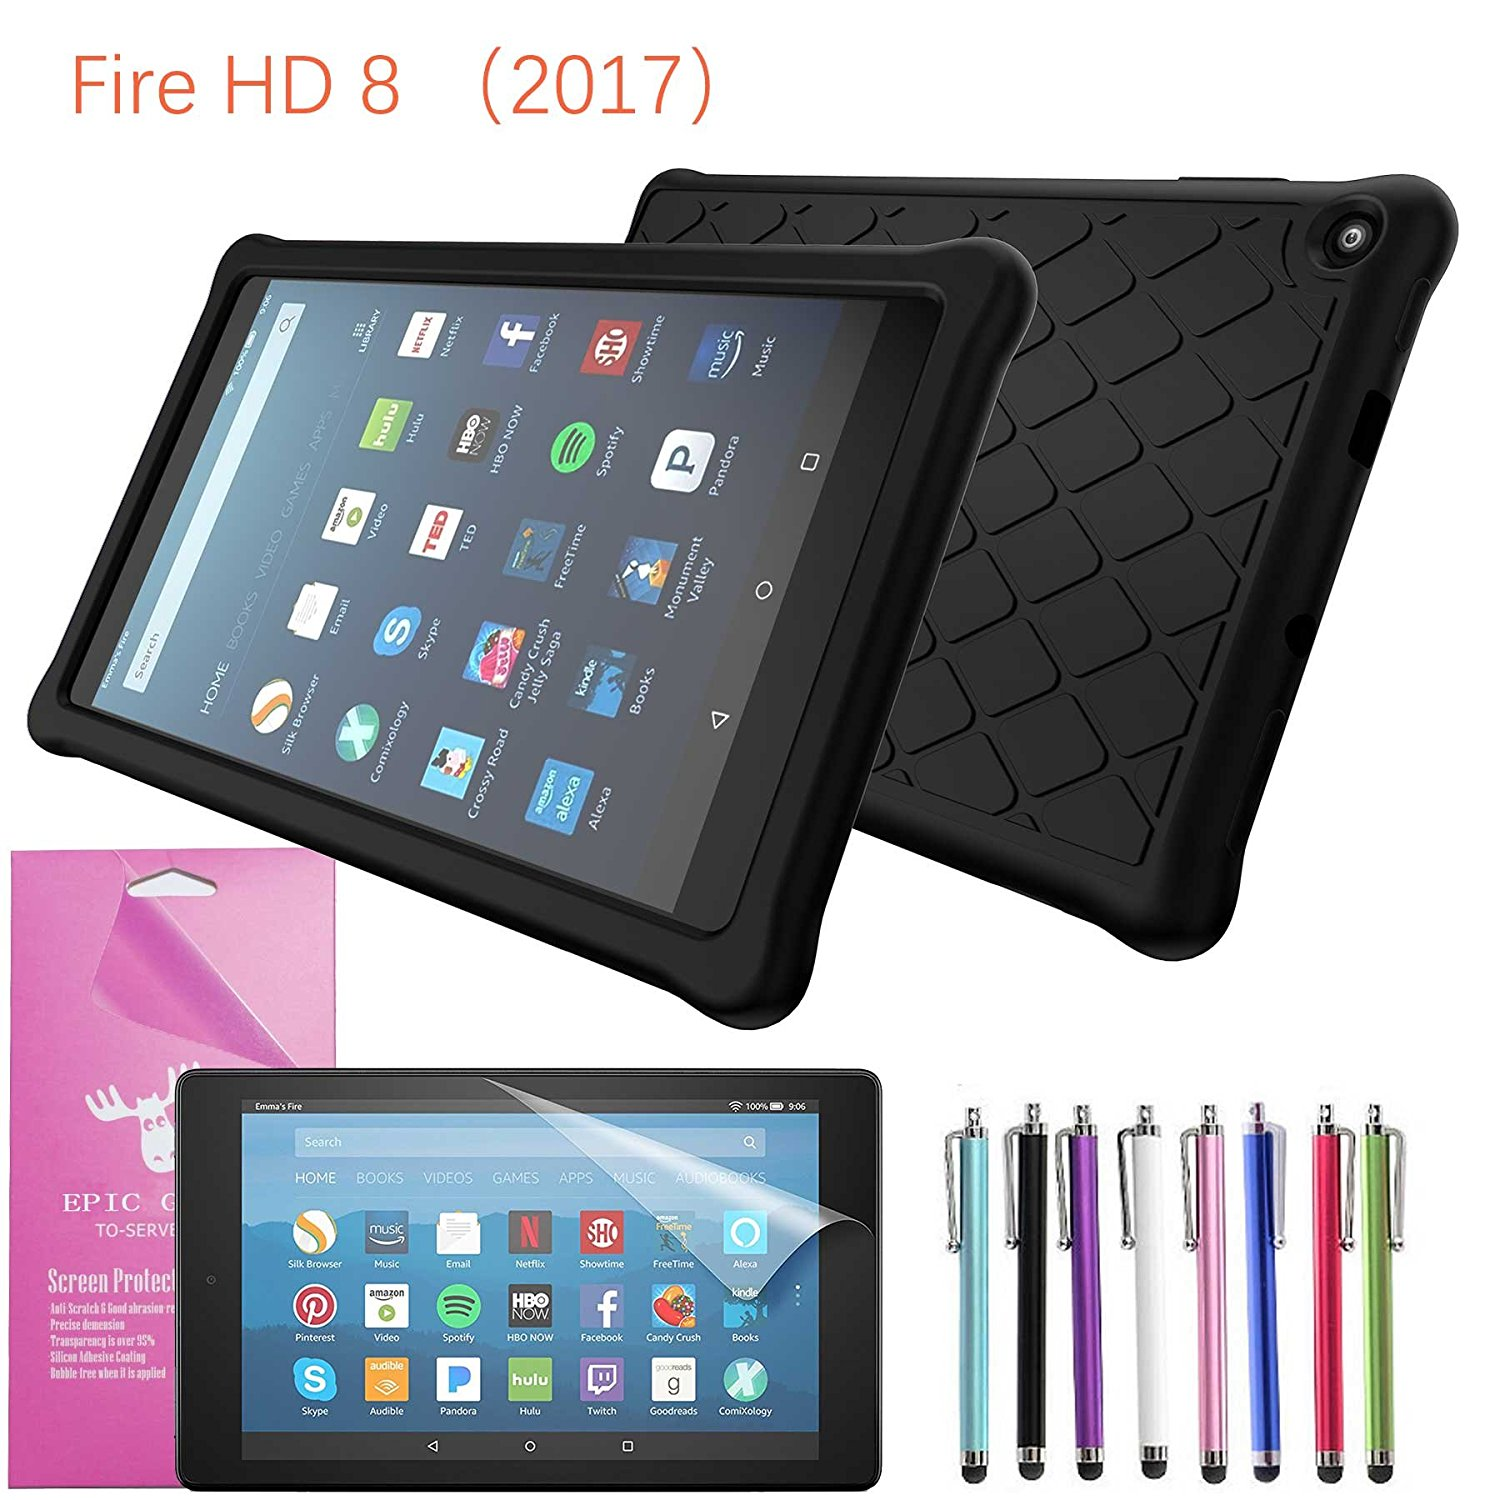 "2017 Amazon Fire HD 8 Case Silicone, EpicGadget Slim Anti-Slip Soft Rubber Silicone Gel Case Cover For (7th Generation) Fire HD 8, 8"" HD Display Tablet + Screen Protector (Black)"